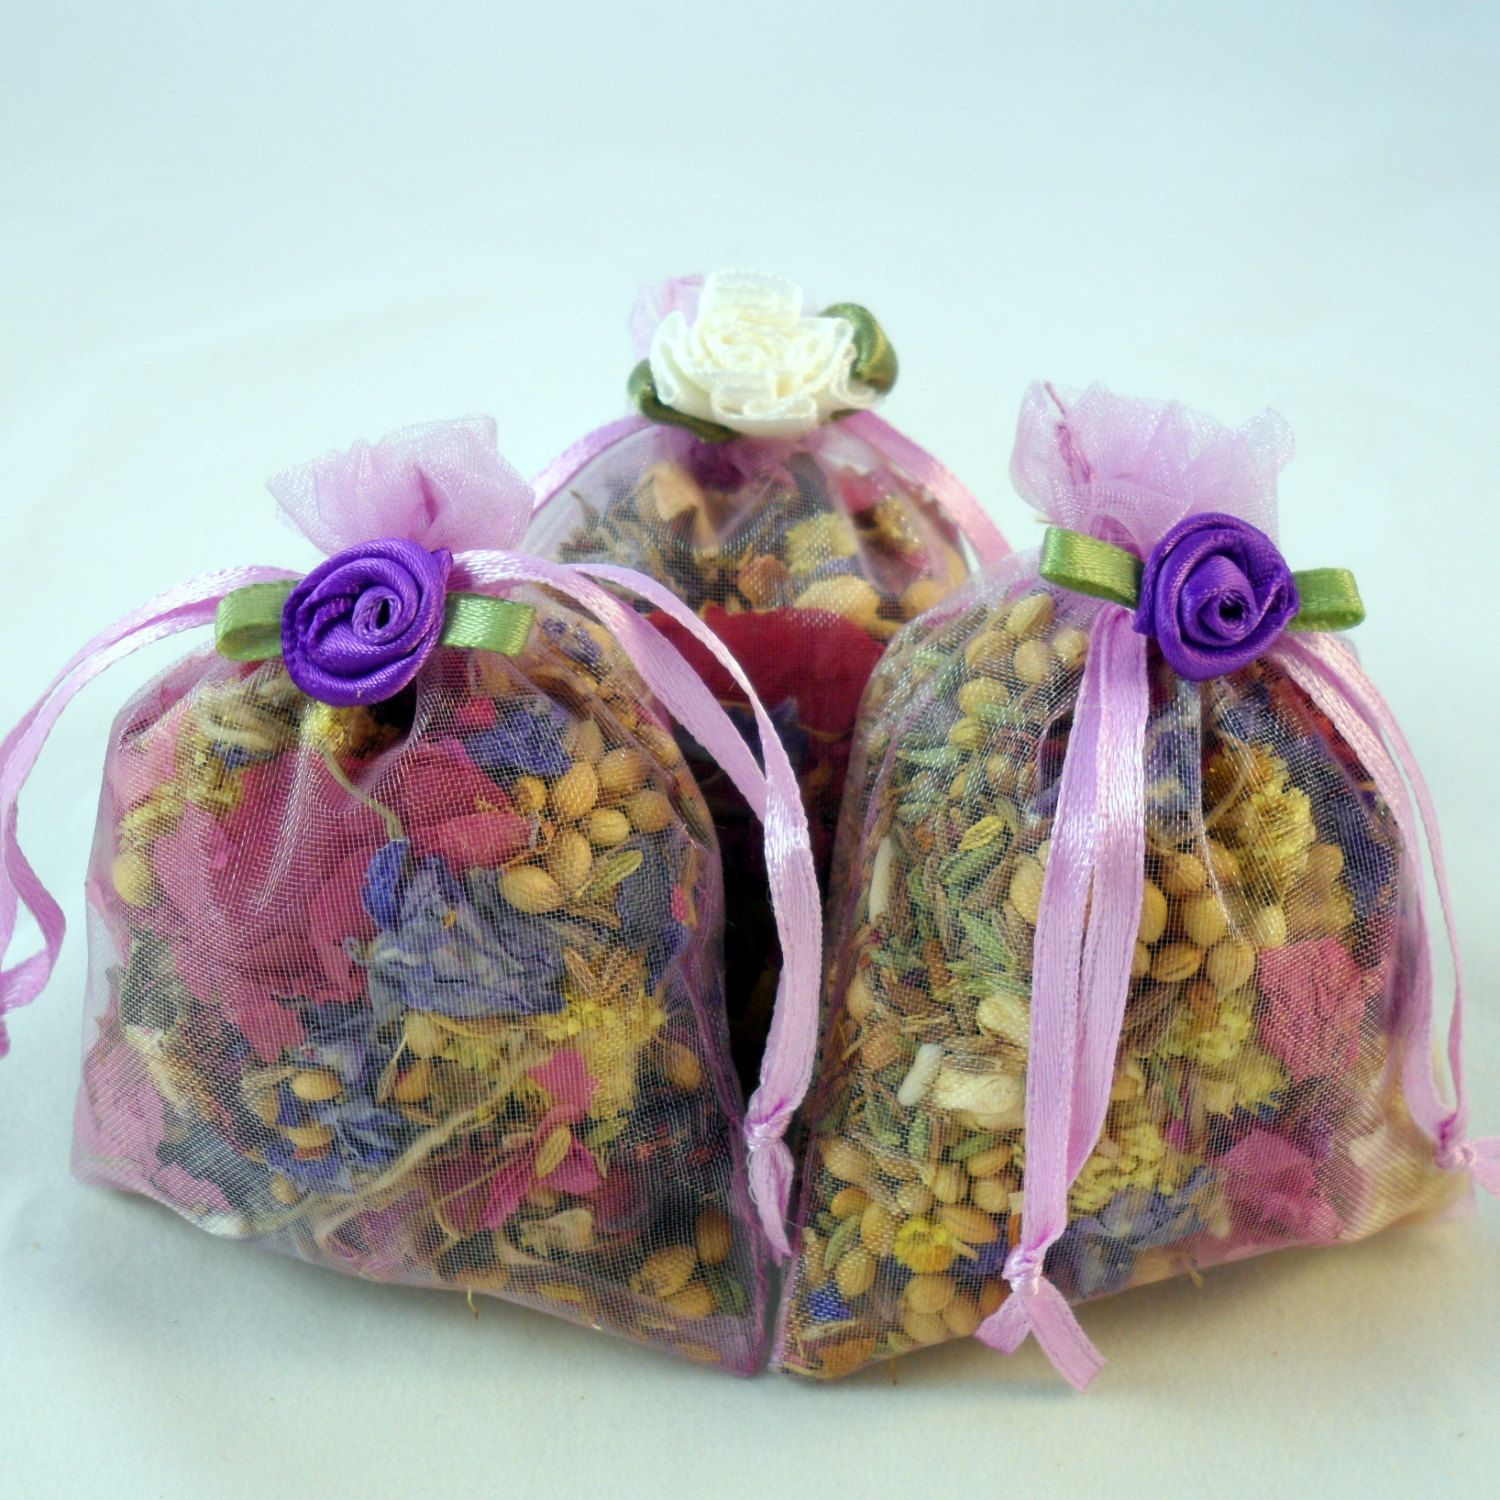 lovely lilac purple herb and dried flower potpourri sachets